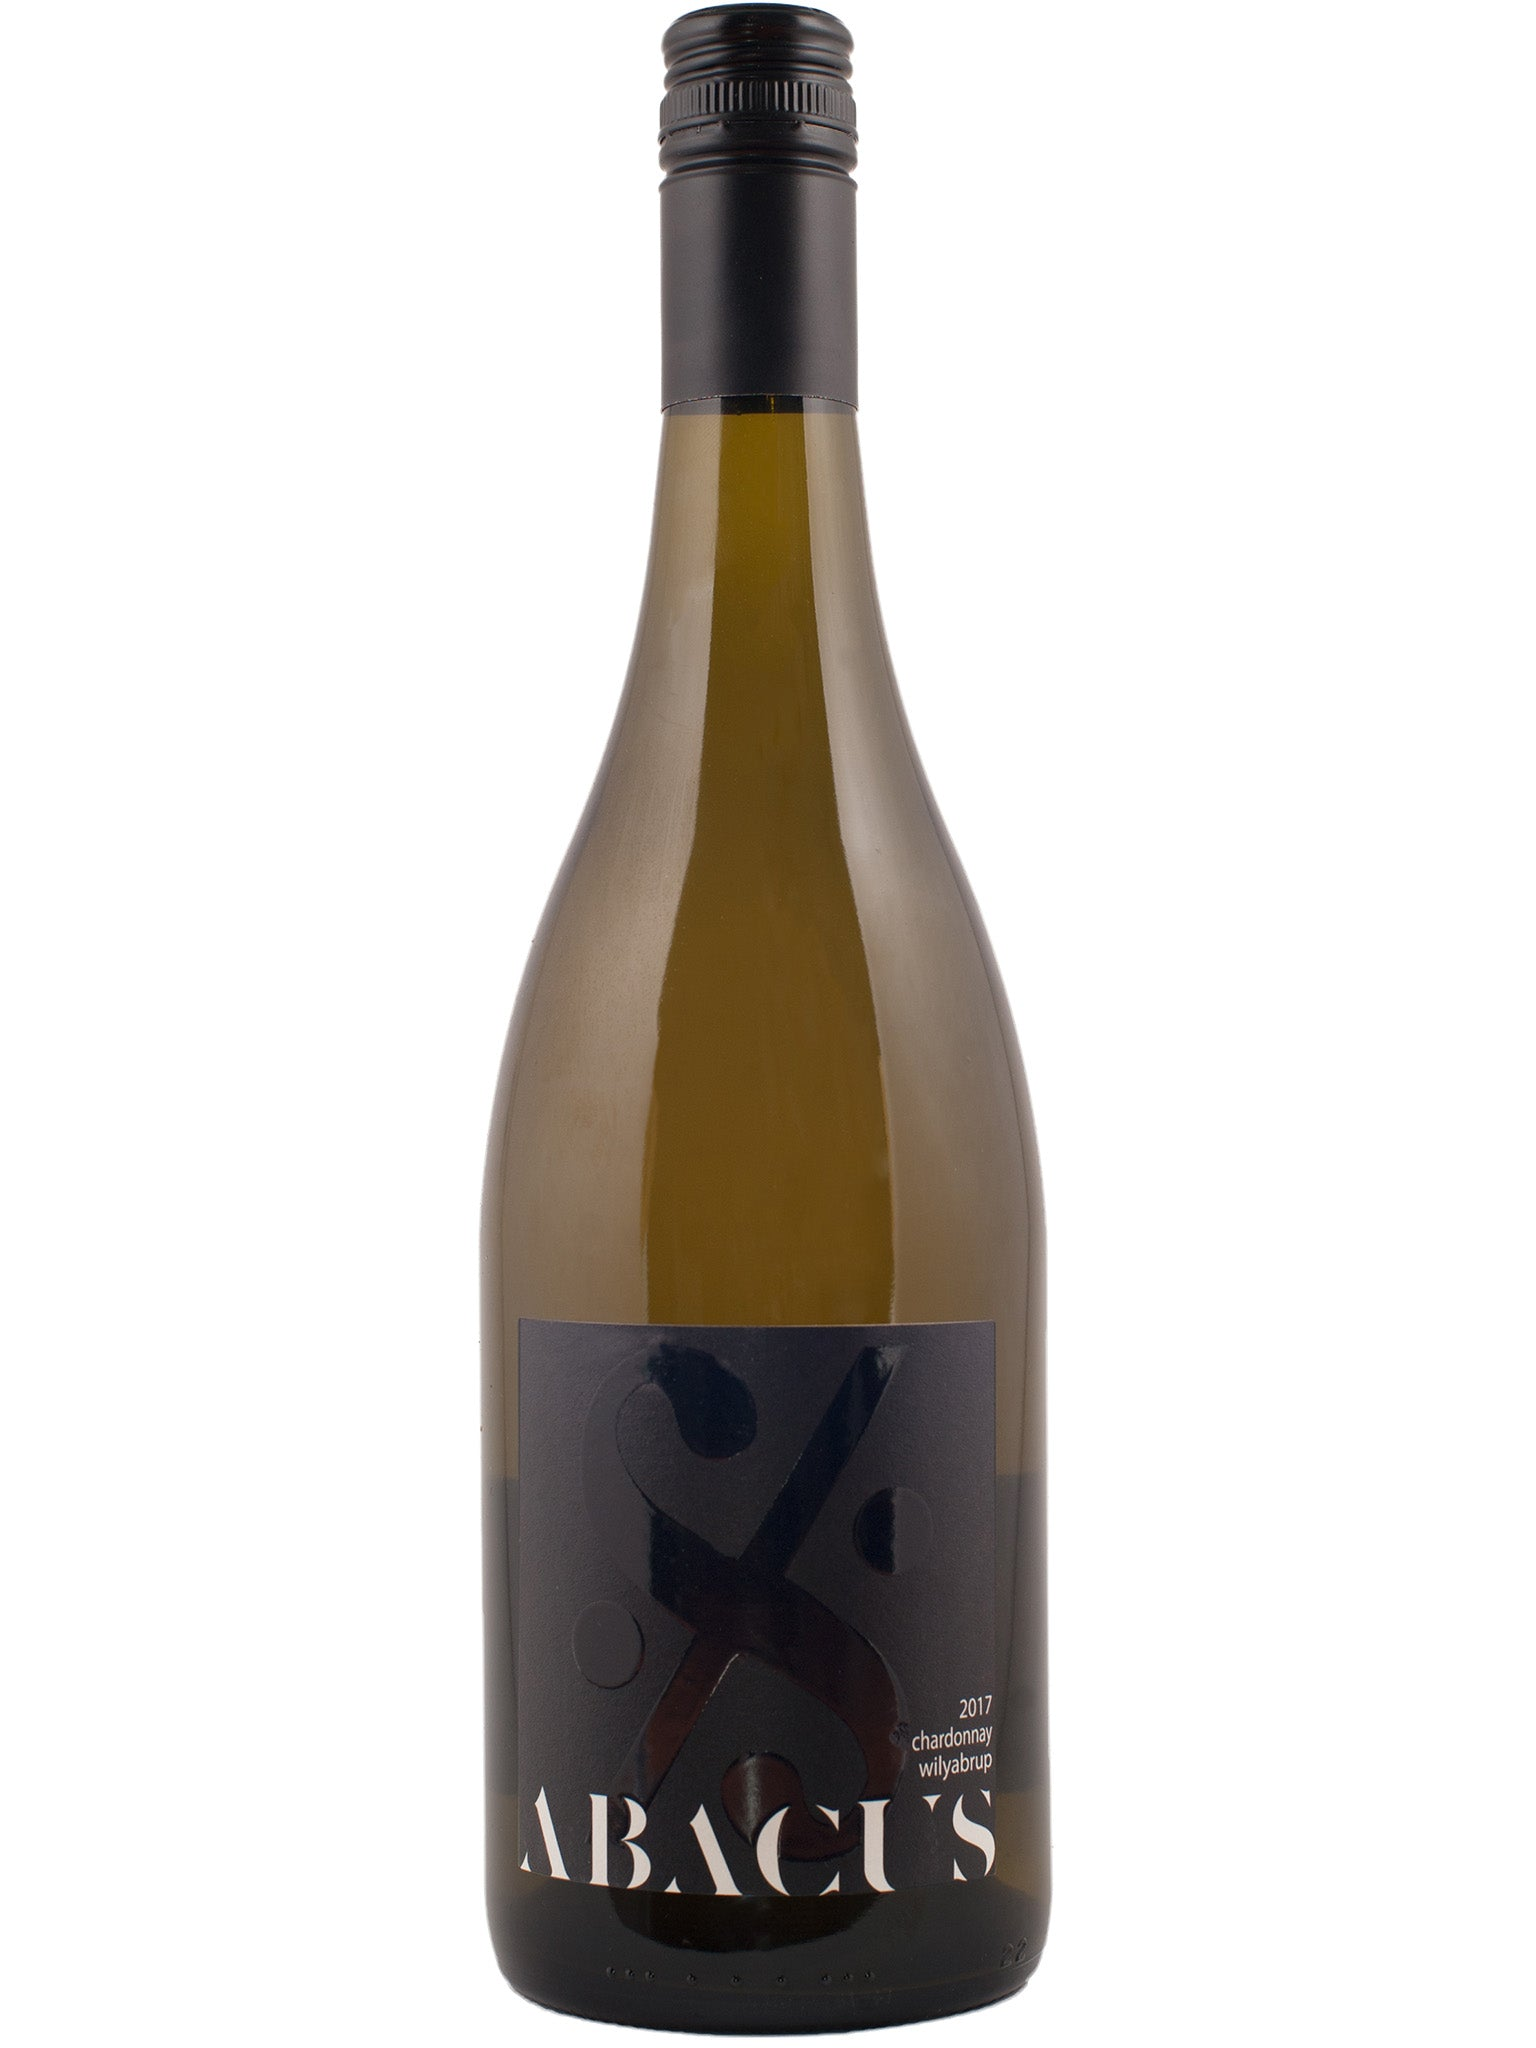 Skigh Wines Abacus Chardonnay 6pk 2017